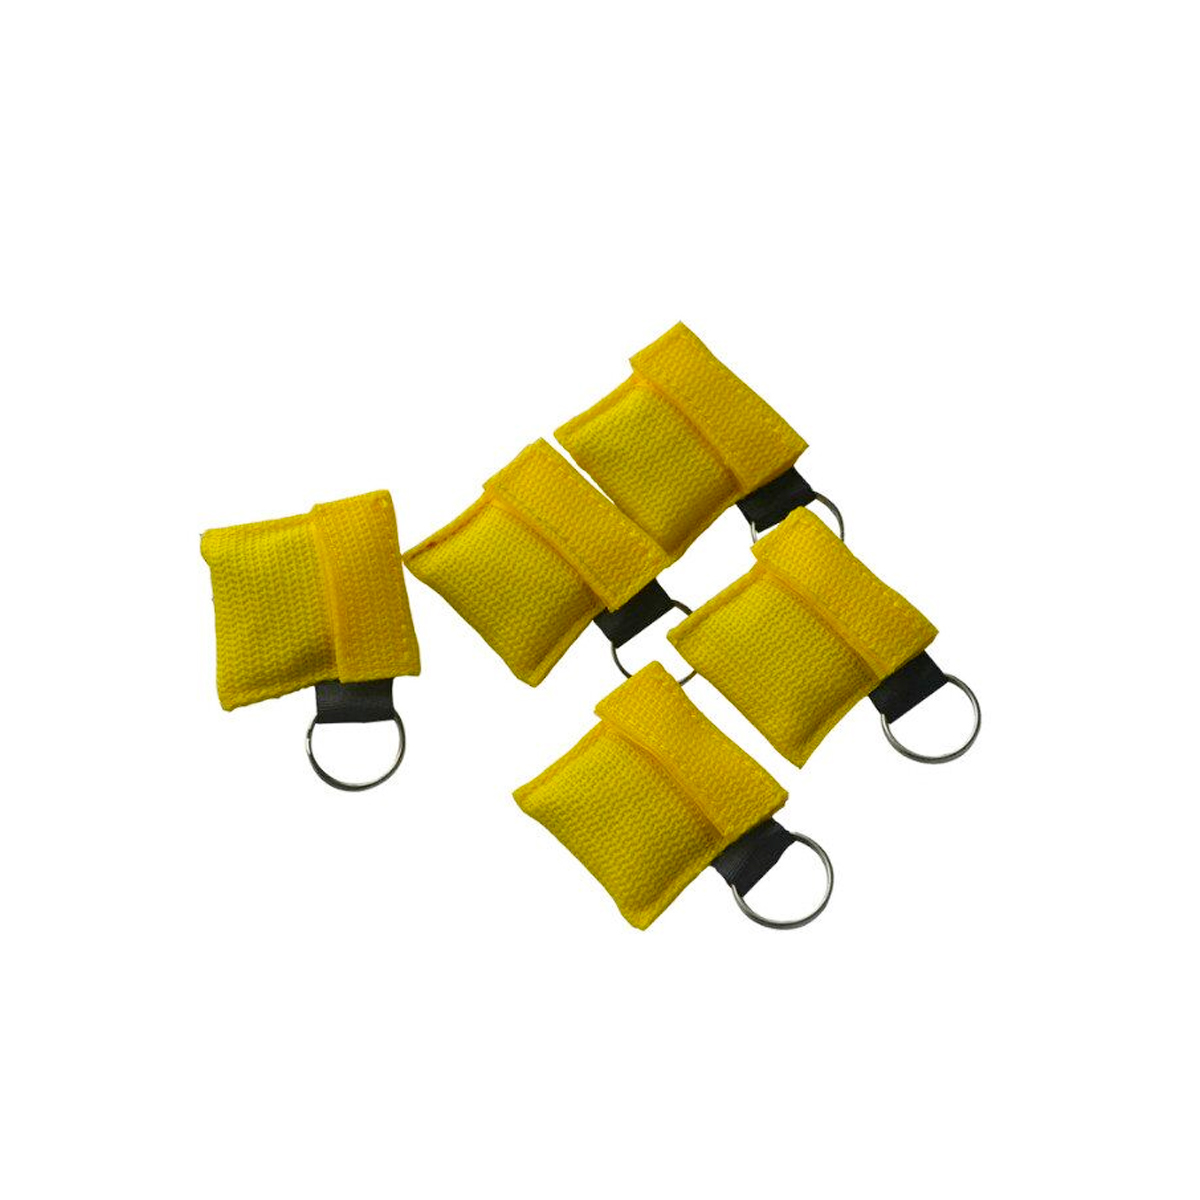 20Pcs/Pack CPR Resuscitator Mask With Keychain CPR Face Shield For CPR/AED With One-way Valve Yellow Nylon Pouch Wrapped